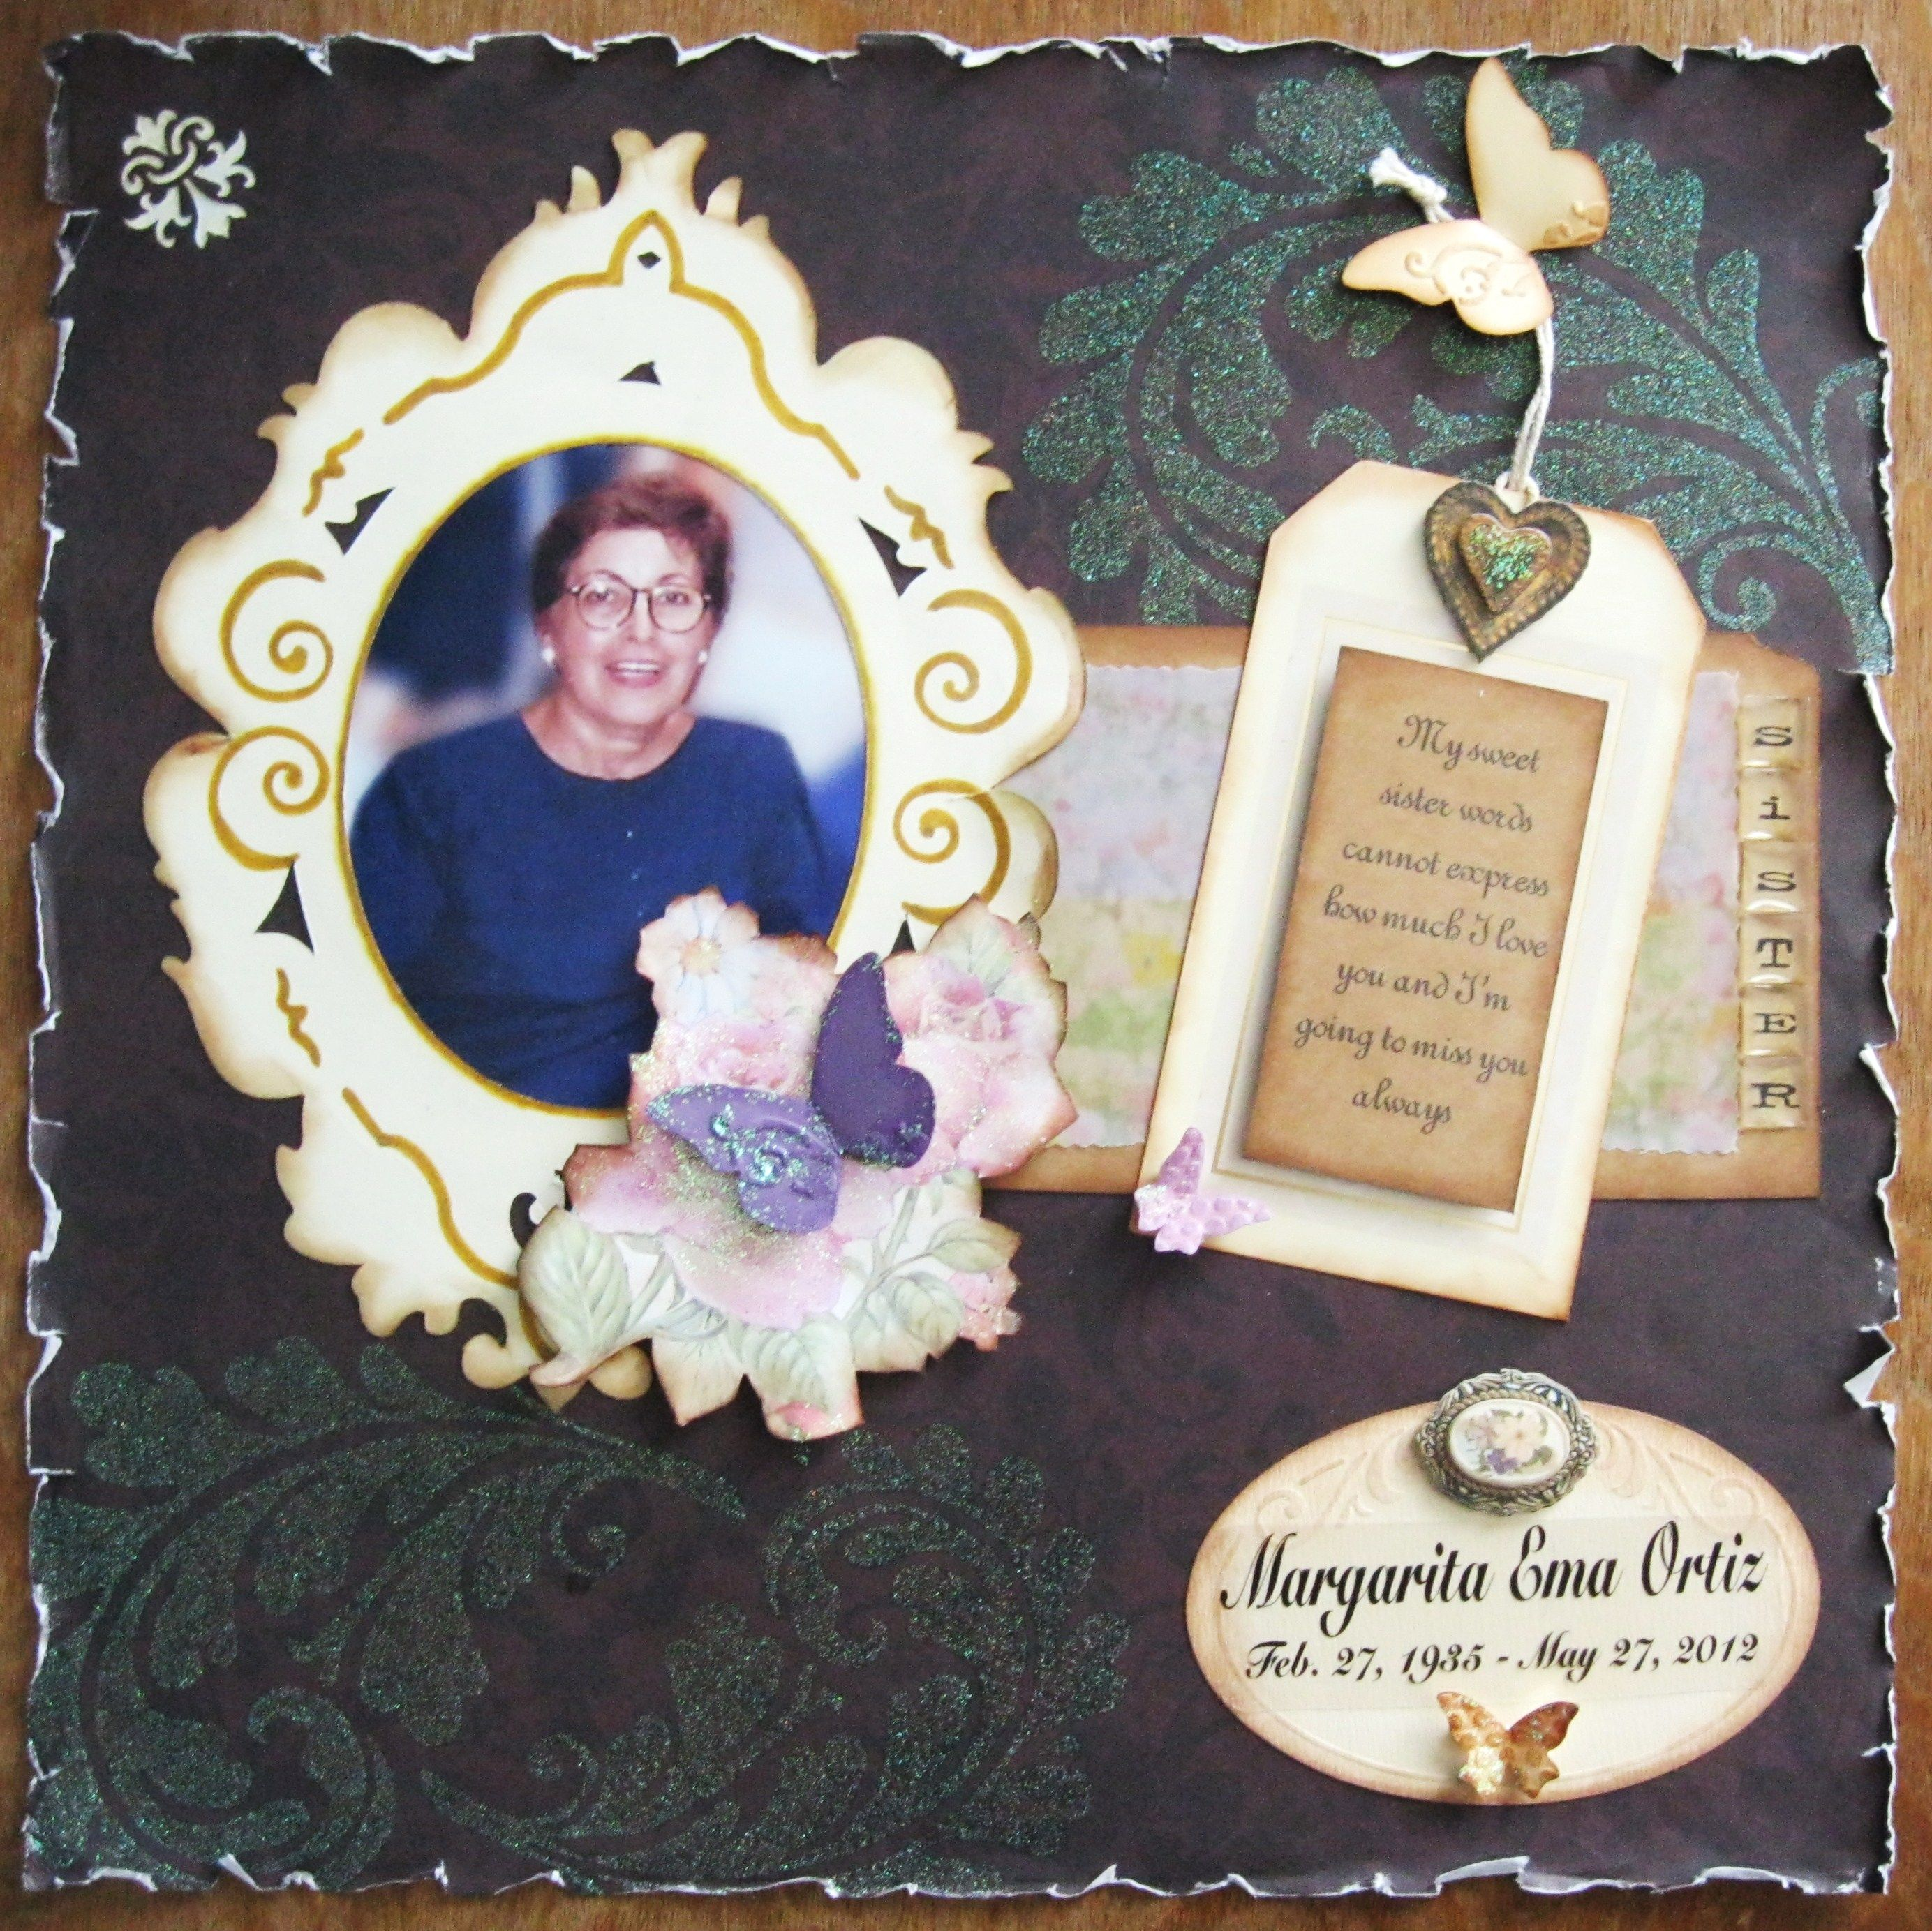 Scrapbook ideas sister - Four Days Ago My Sister Cuca Passed Away She Was 77 I Felt Compelled To Scrapbook About Her As A Tribute And Also As A Way To Channel My Pain She Was